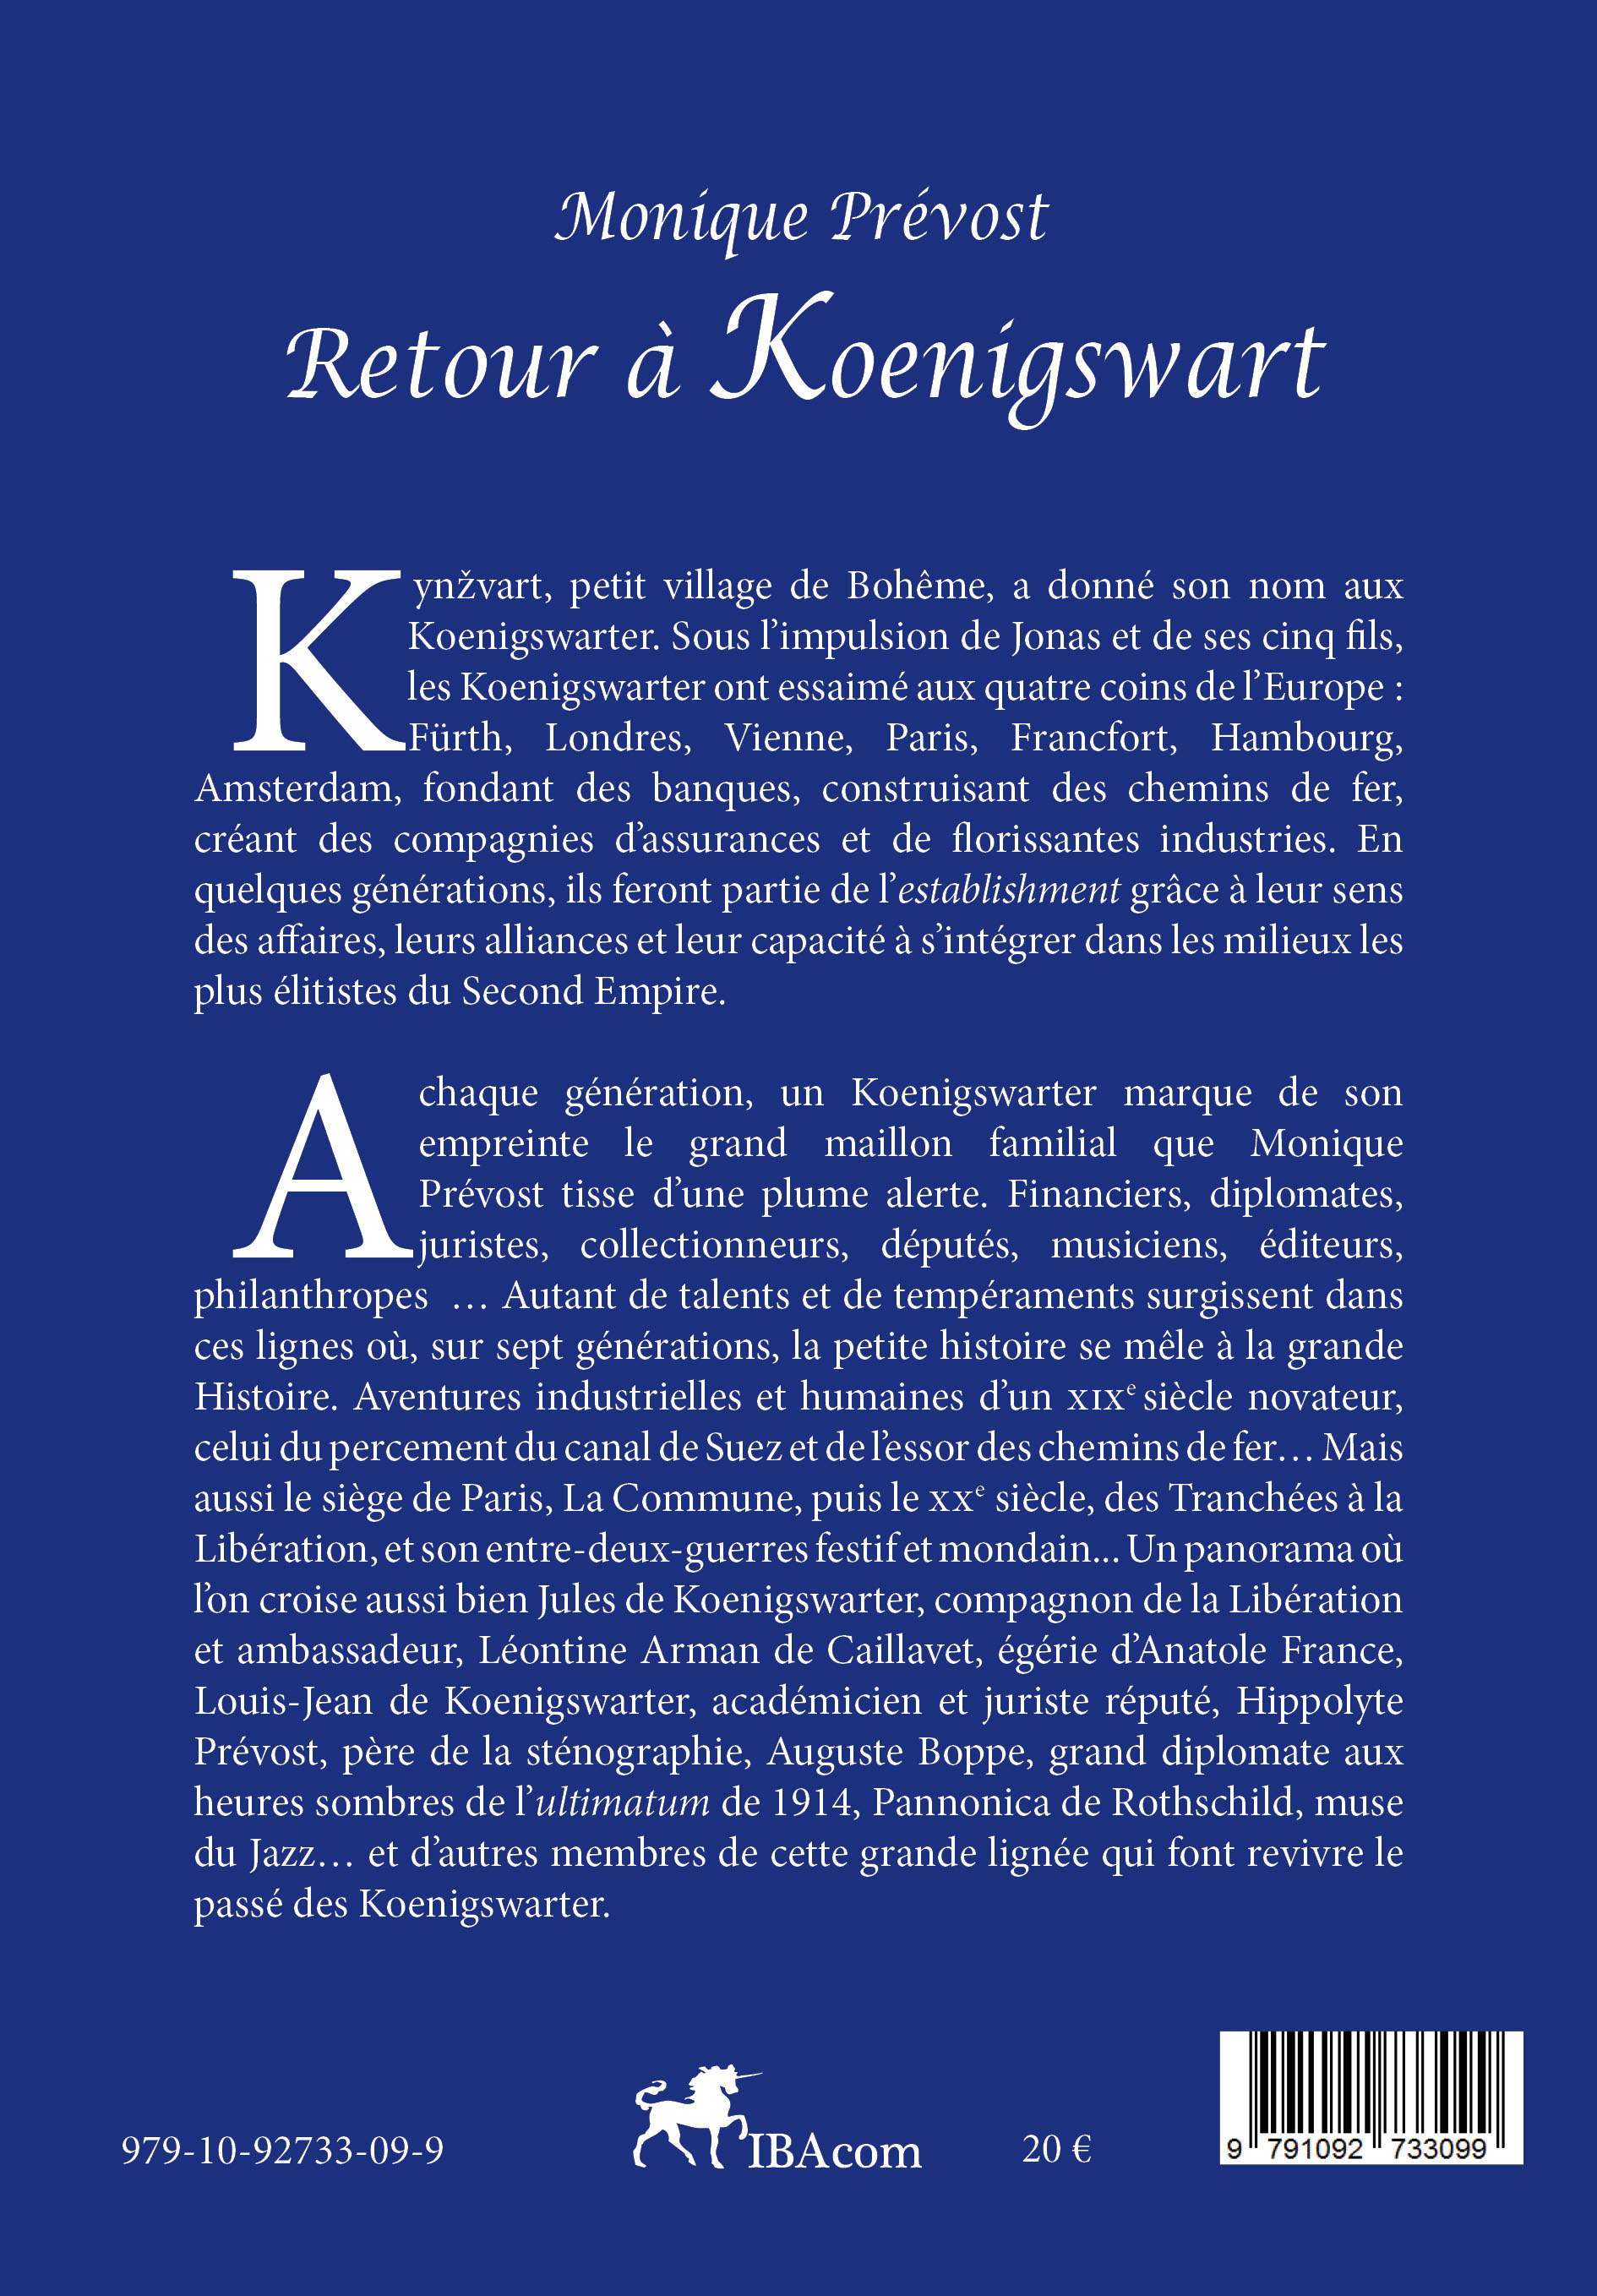 4e-de-couverture-light-retour-koenigswart